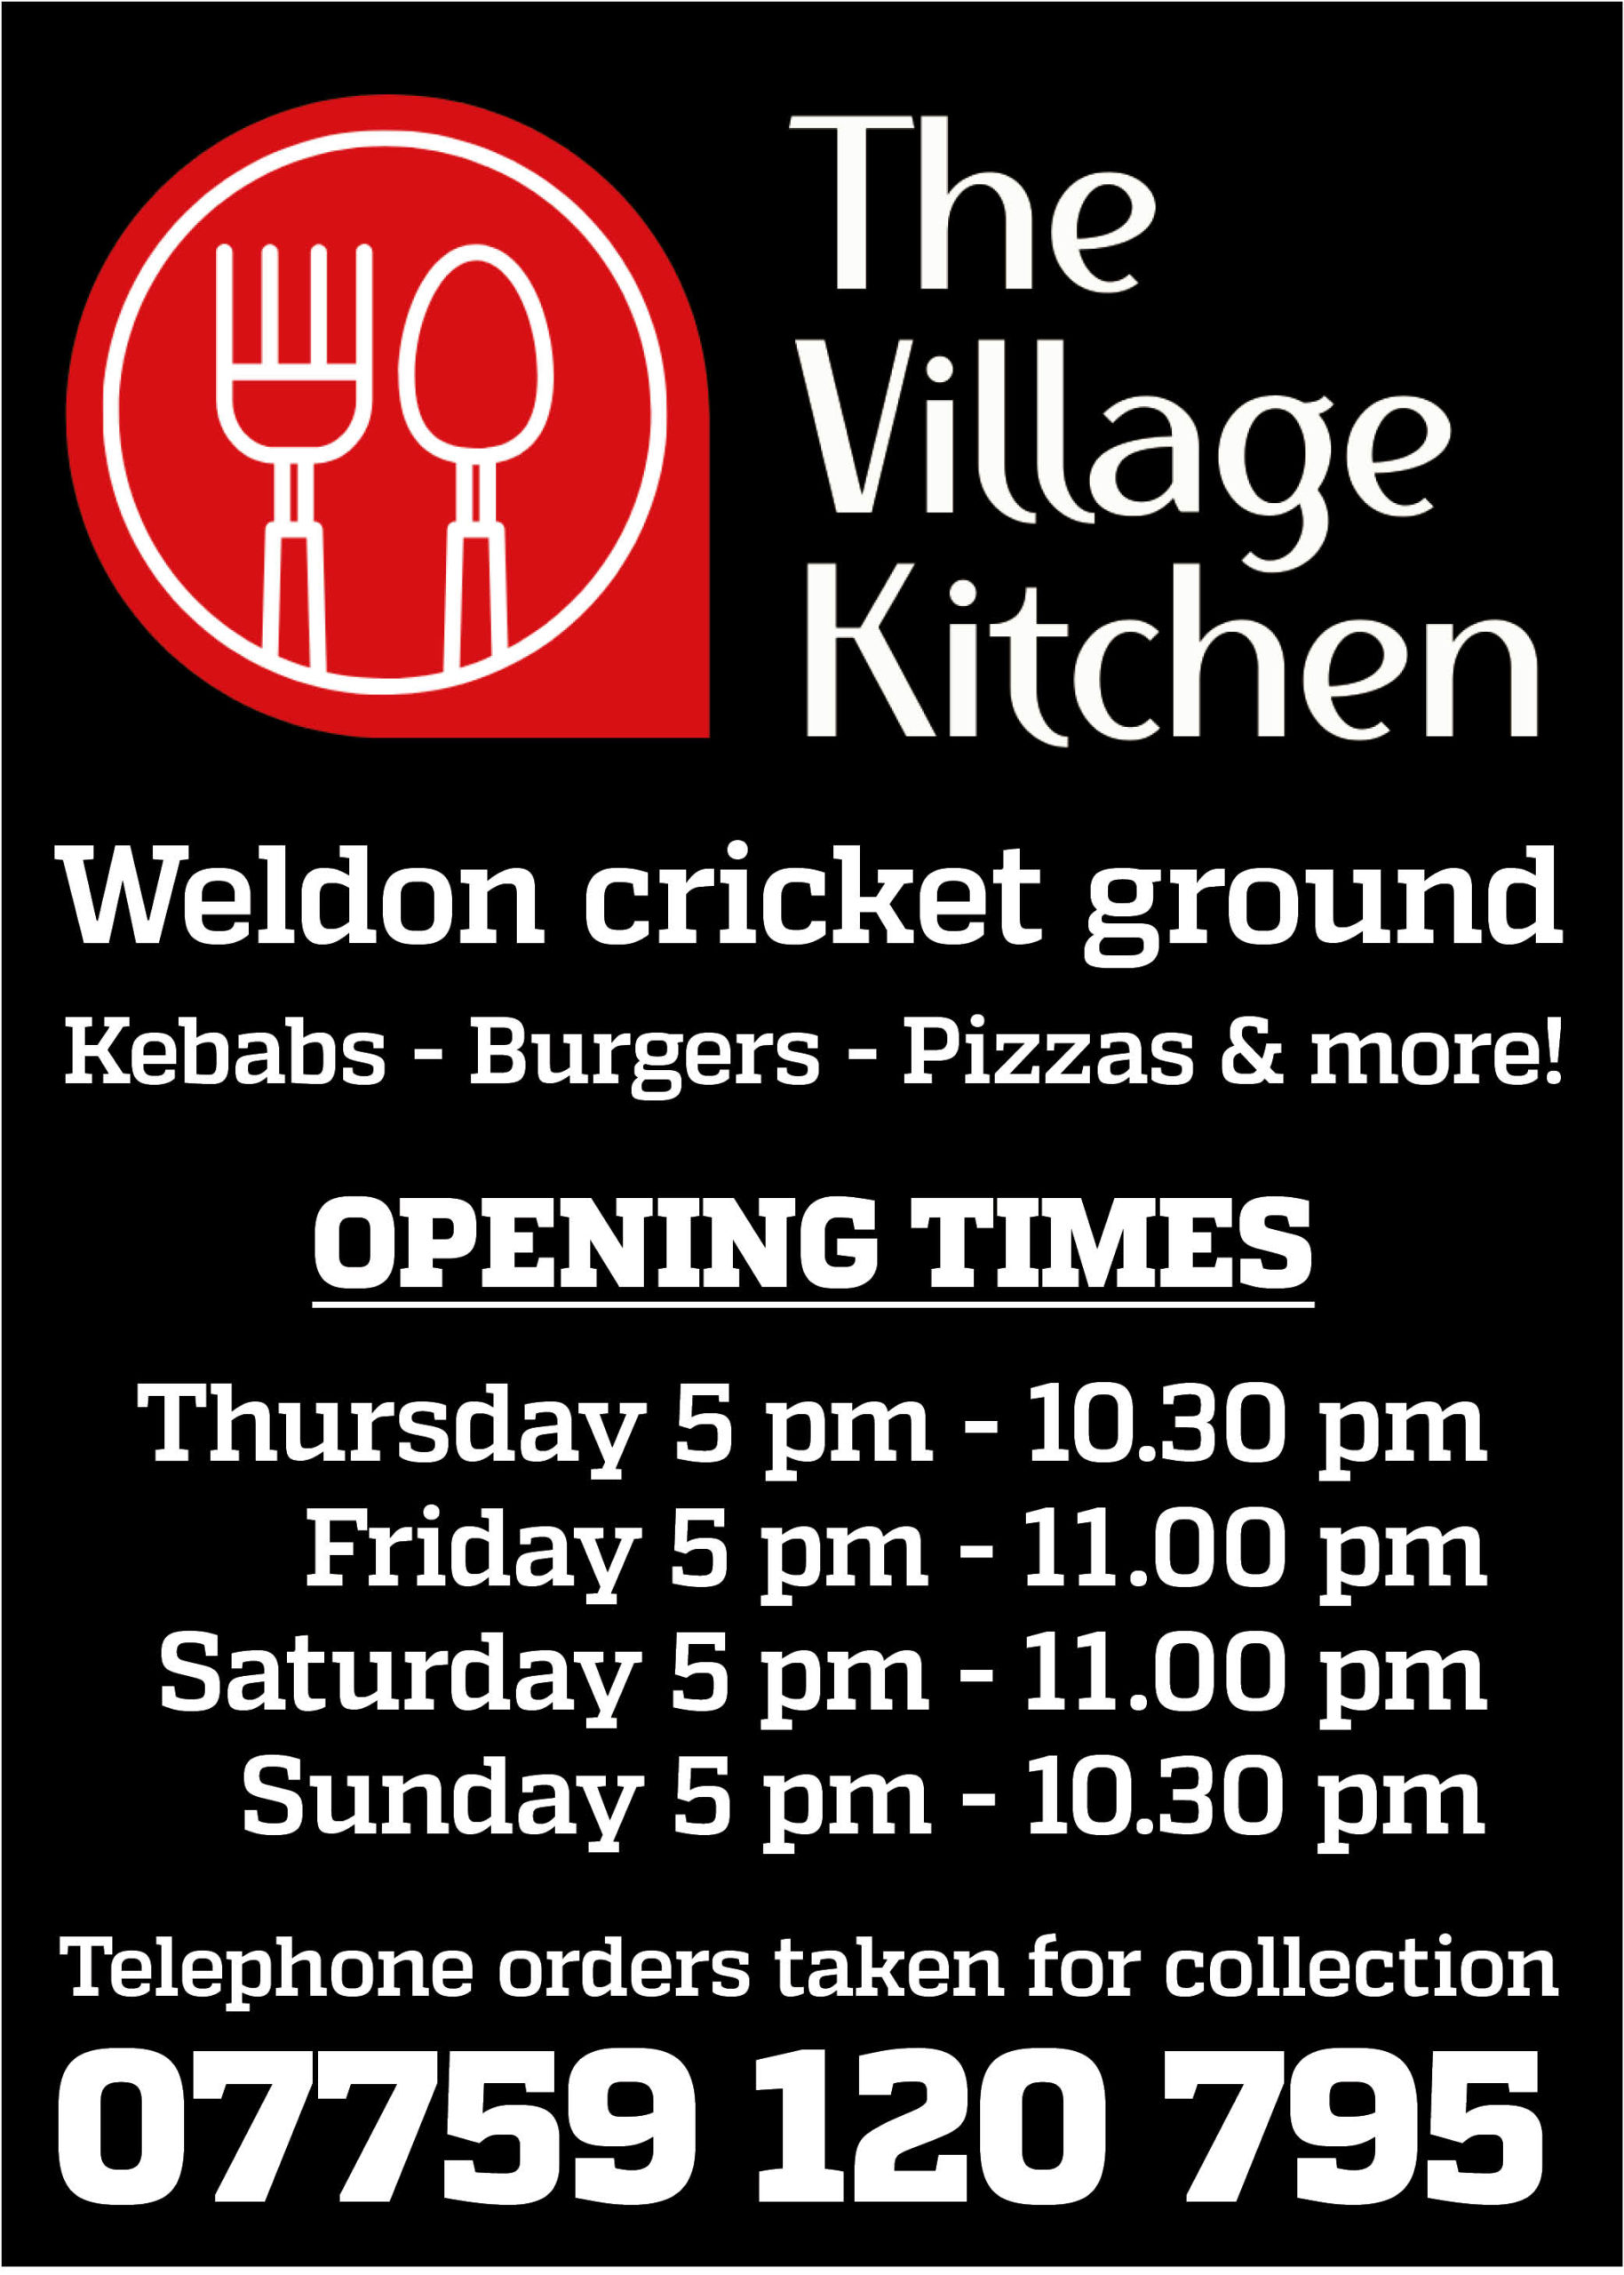 The Village Kitchen sidebar